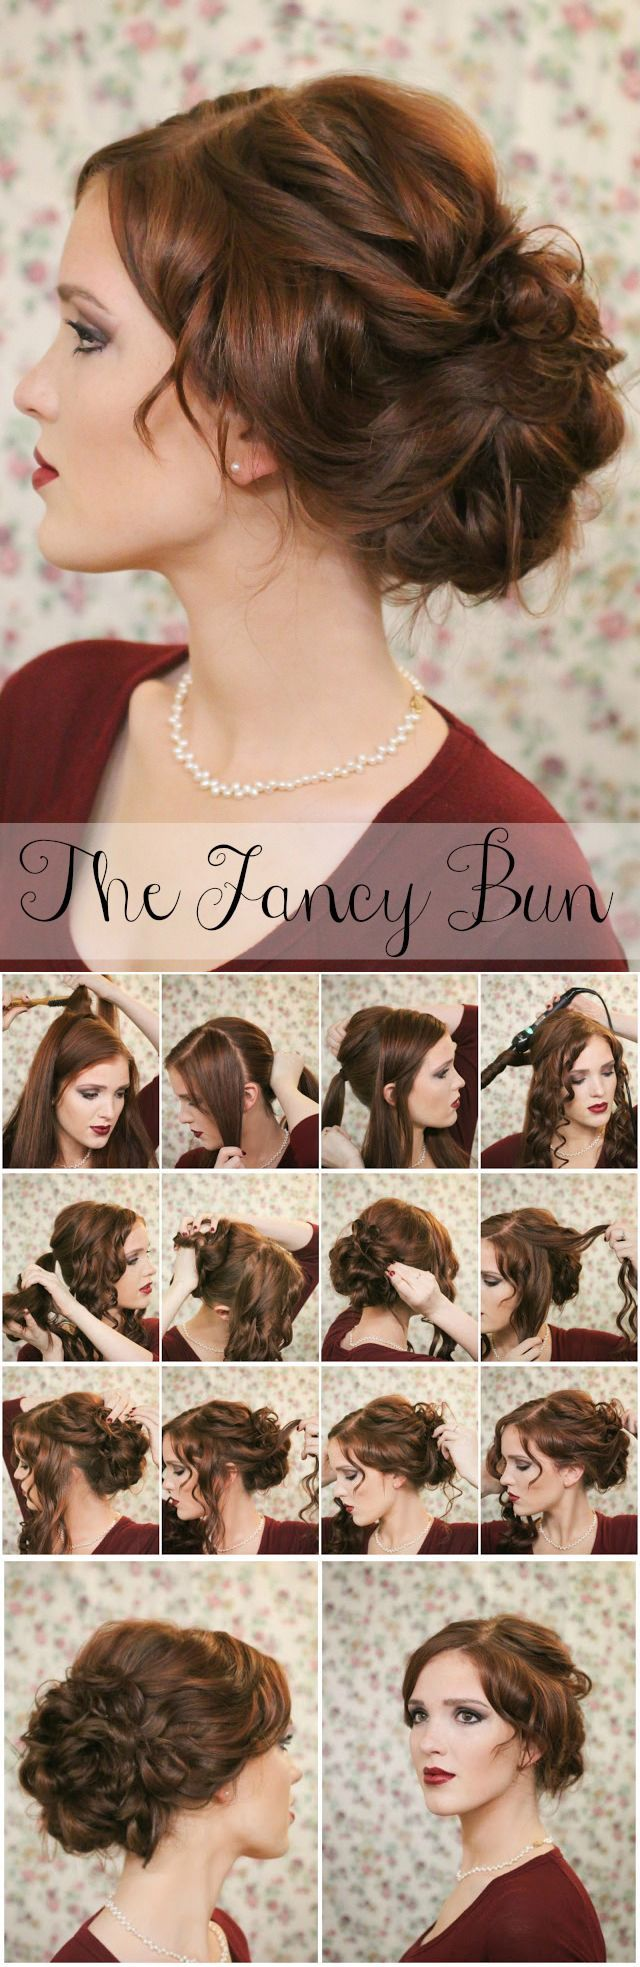 Are you looking for a fun way to do your hair this New Year's Eve? Check out this simple messy bun updo tutorial by The Freckled Fox...